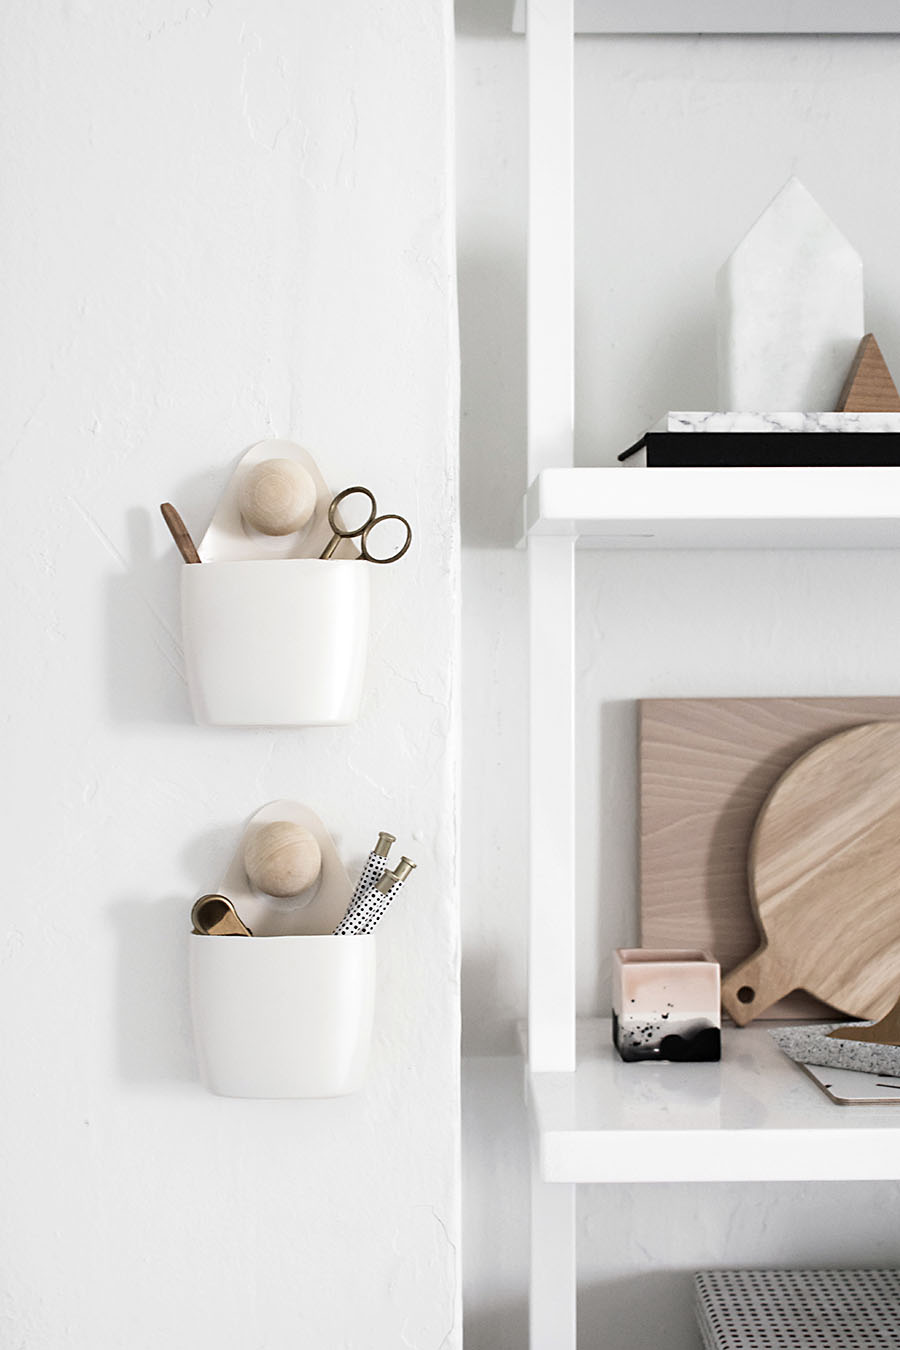 Wall Pocket Organizers